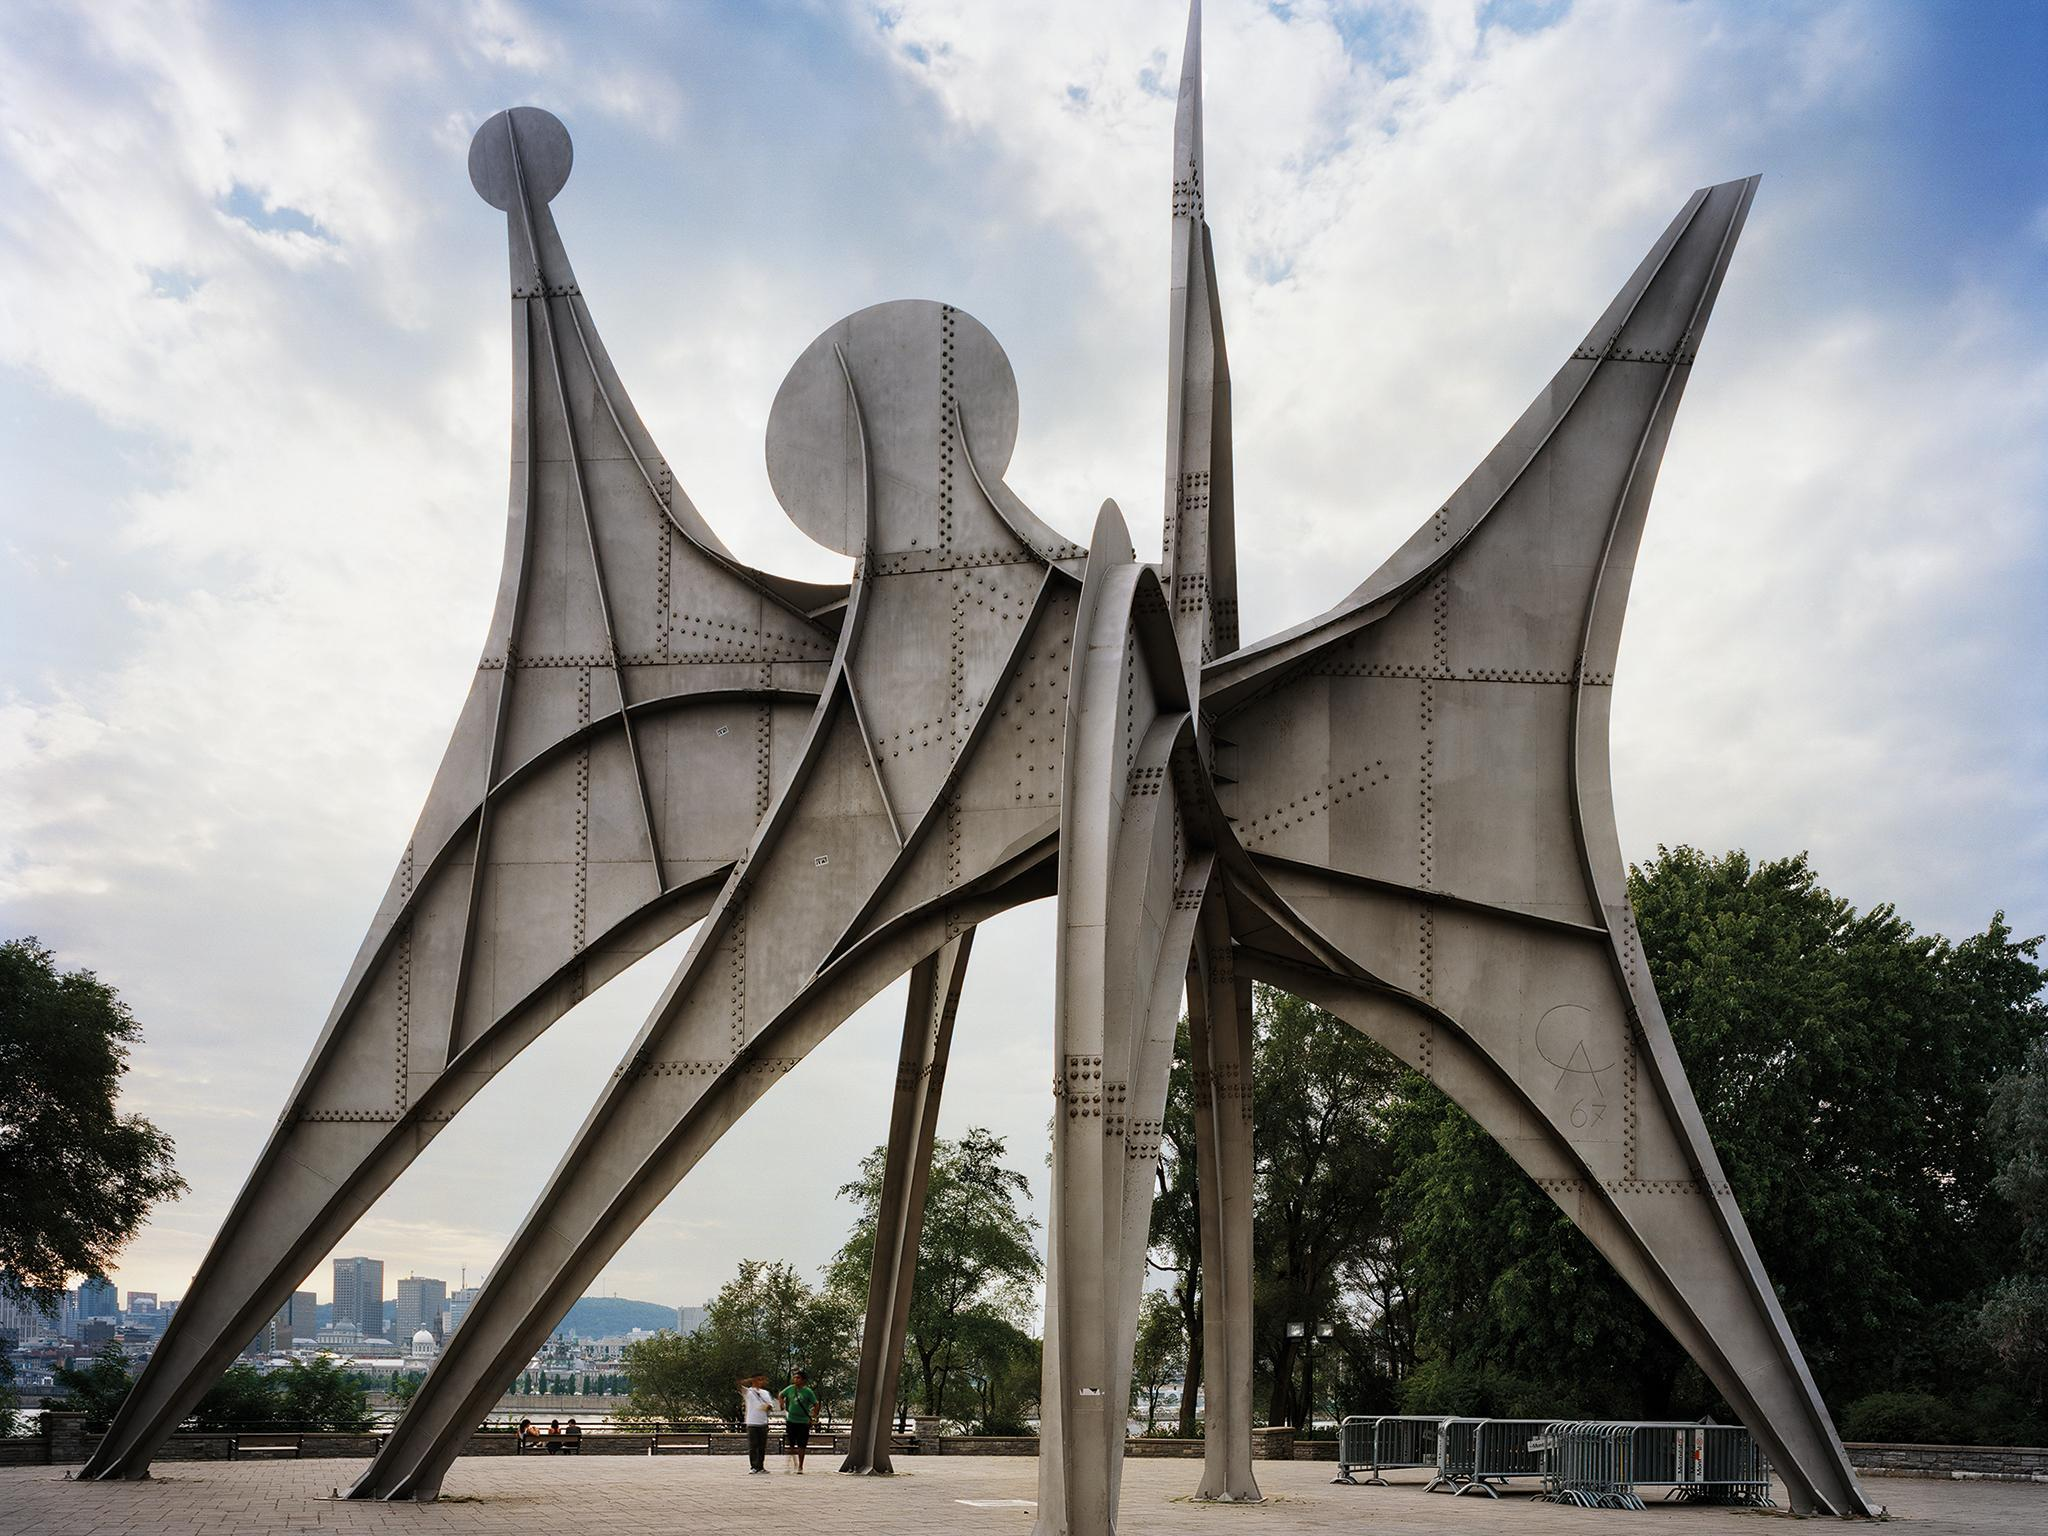 The eerie, forgotten relics of world's fairs across the globe